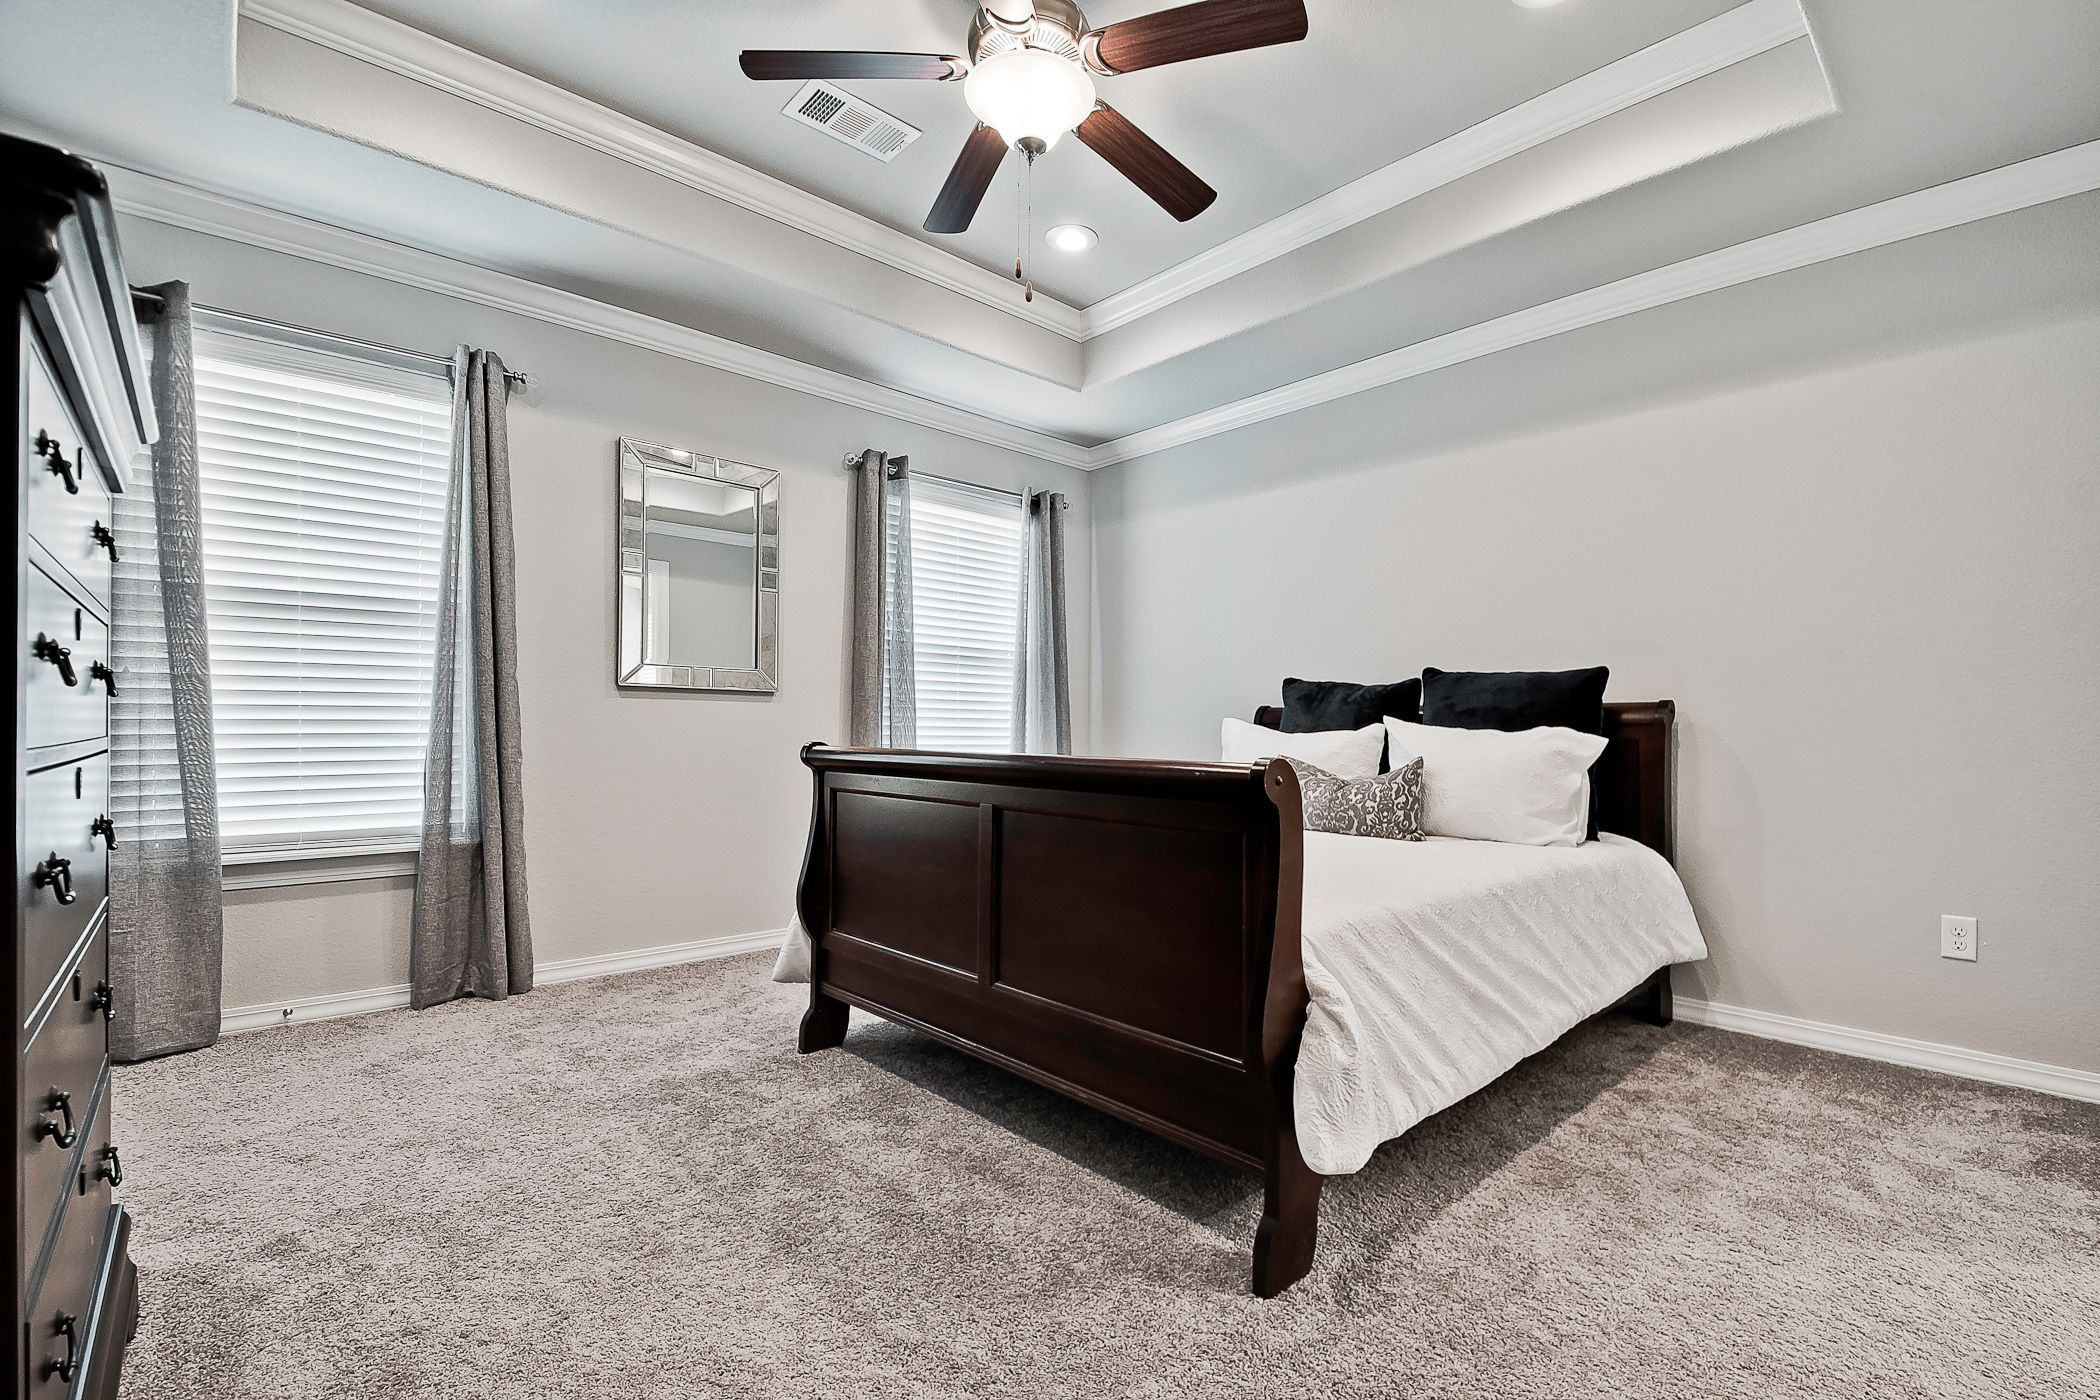 Bedroom featured in the Degray 1757 By Riverwood Homes - Arkansas in Fayetteville, AR